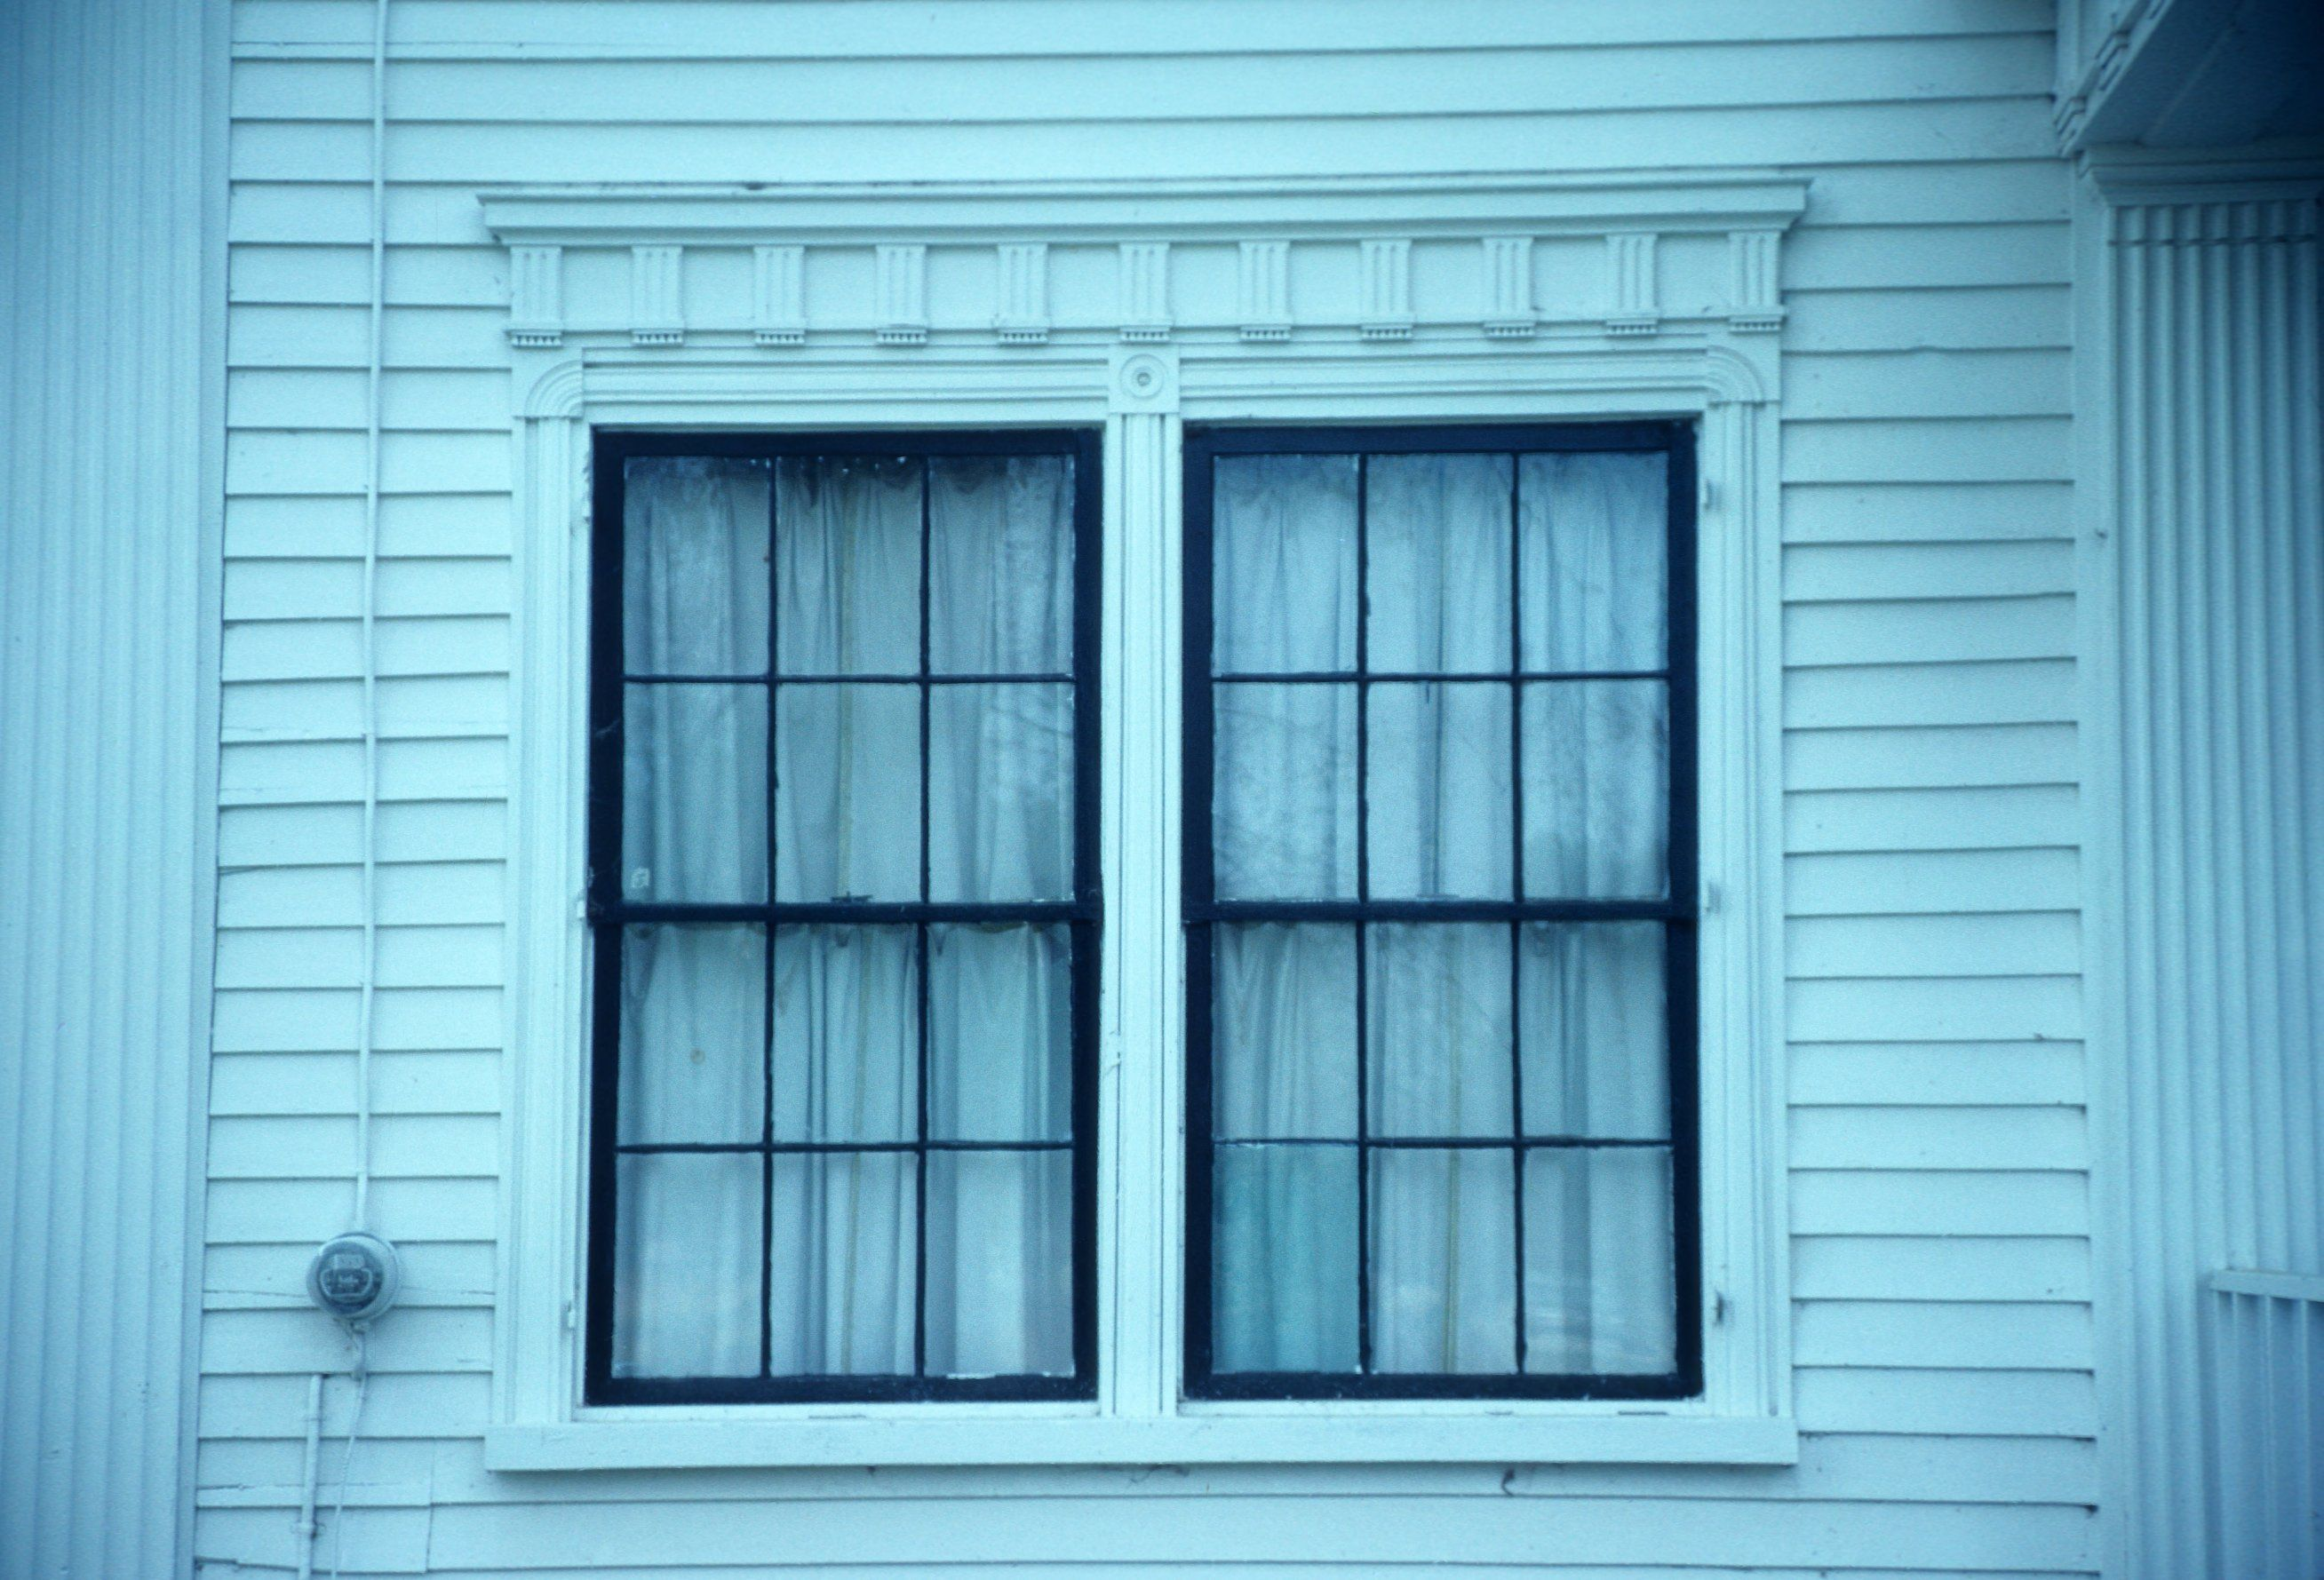 House windows pictures -  We Install And Repair Repair Windows For Residential Homes Offices Business S